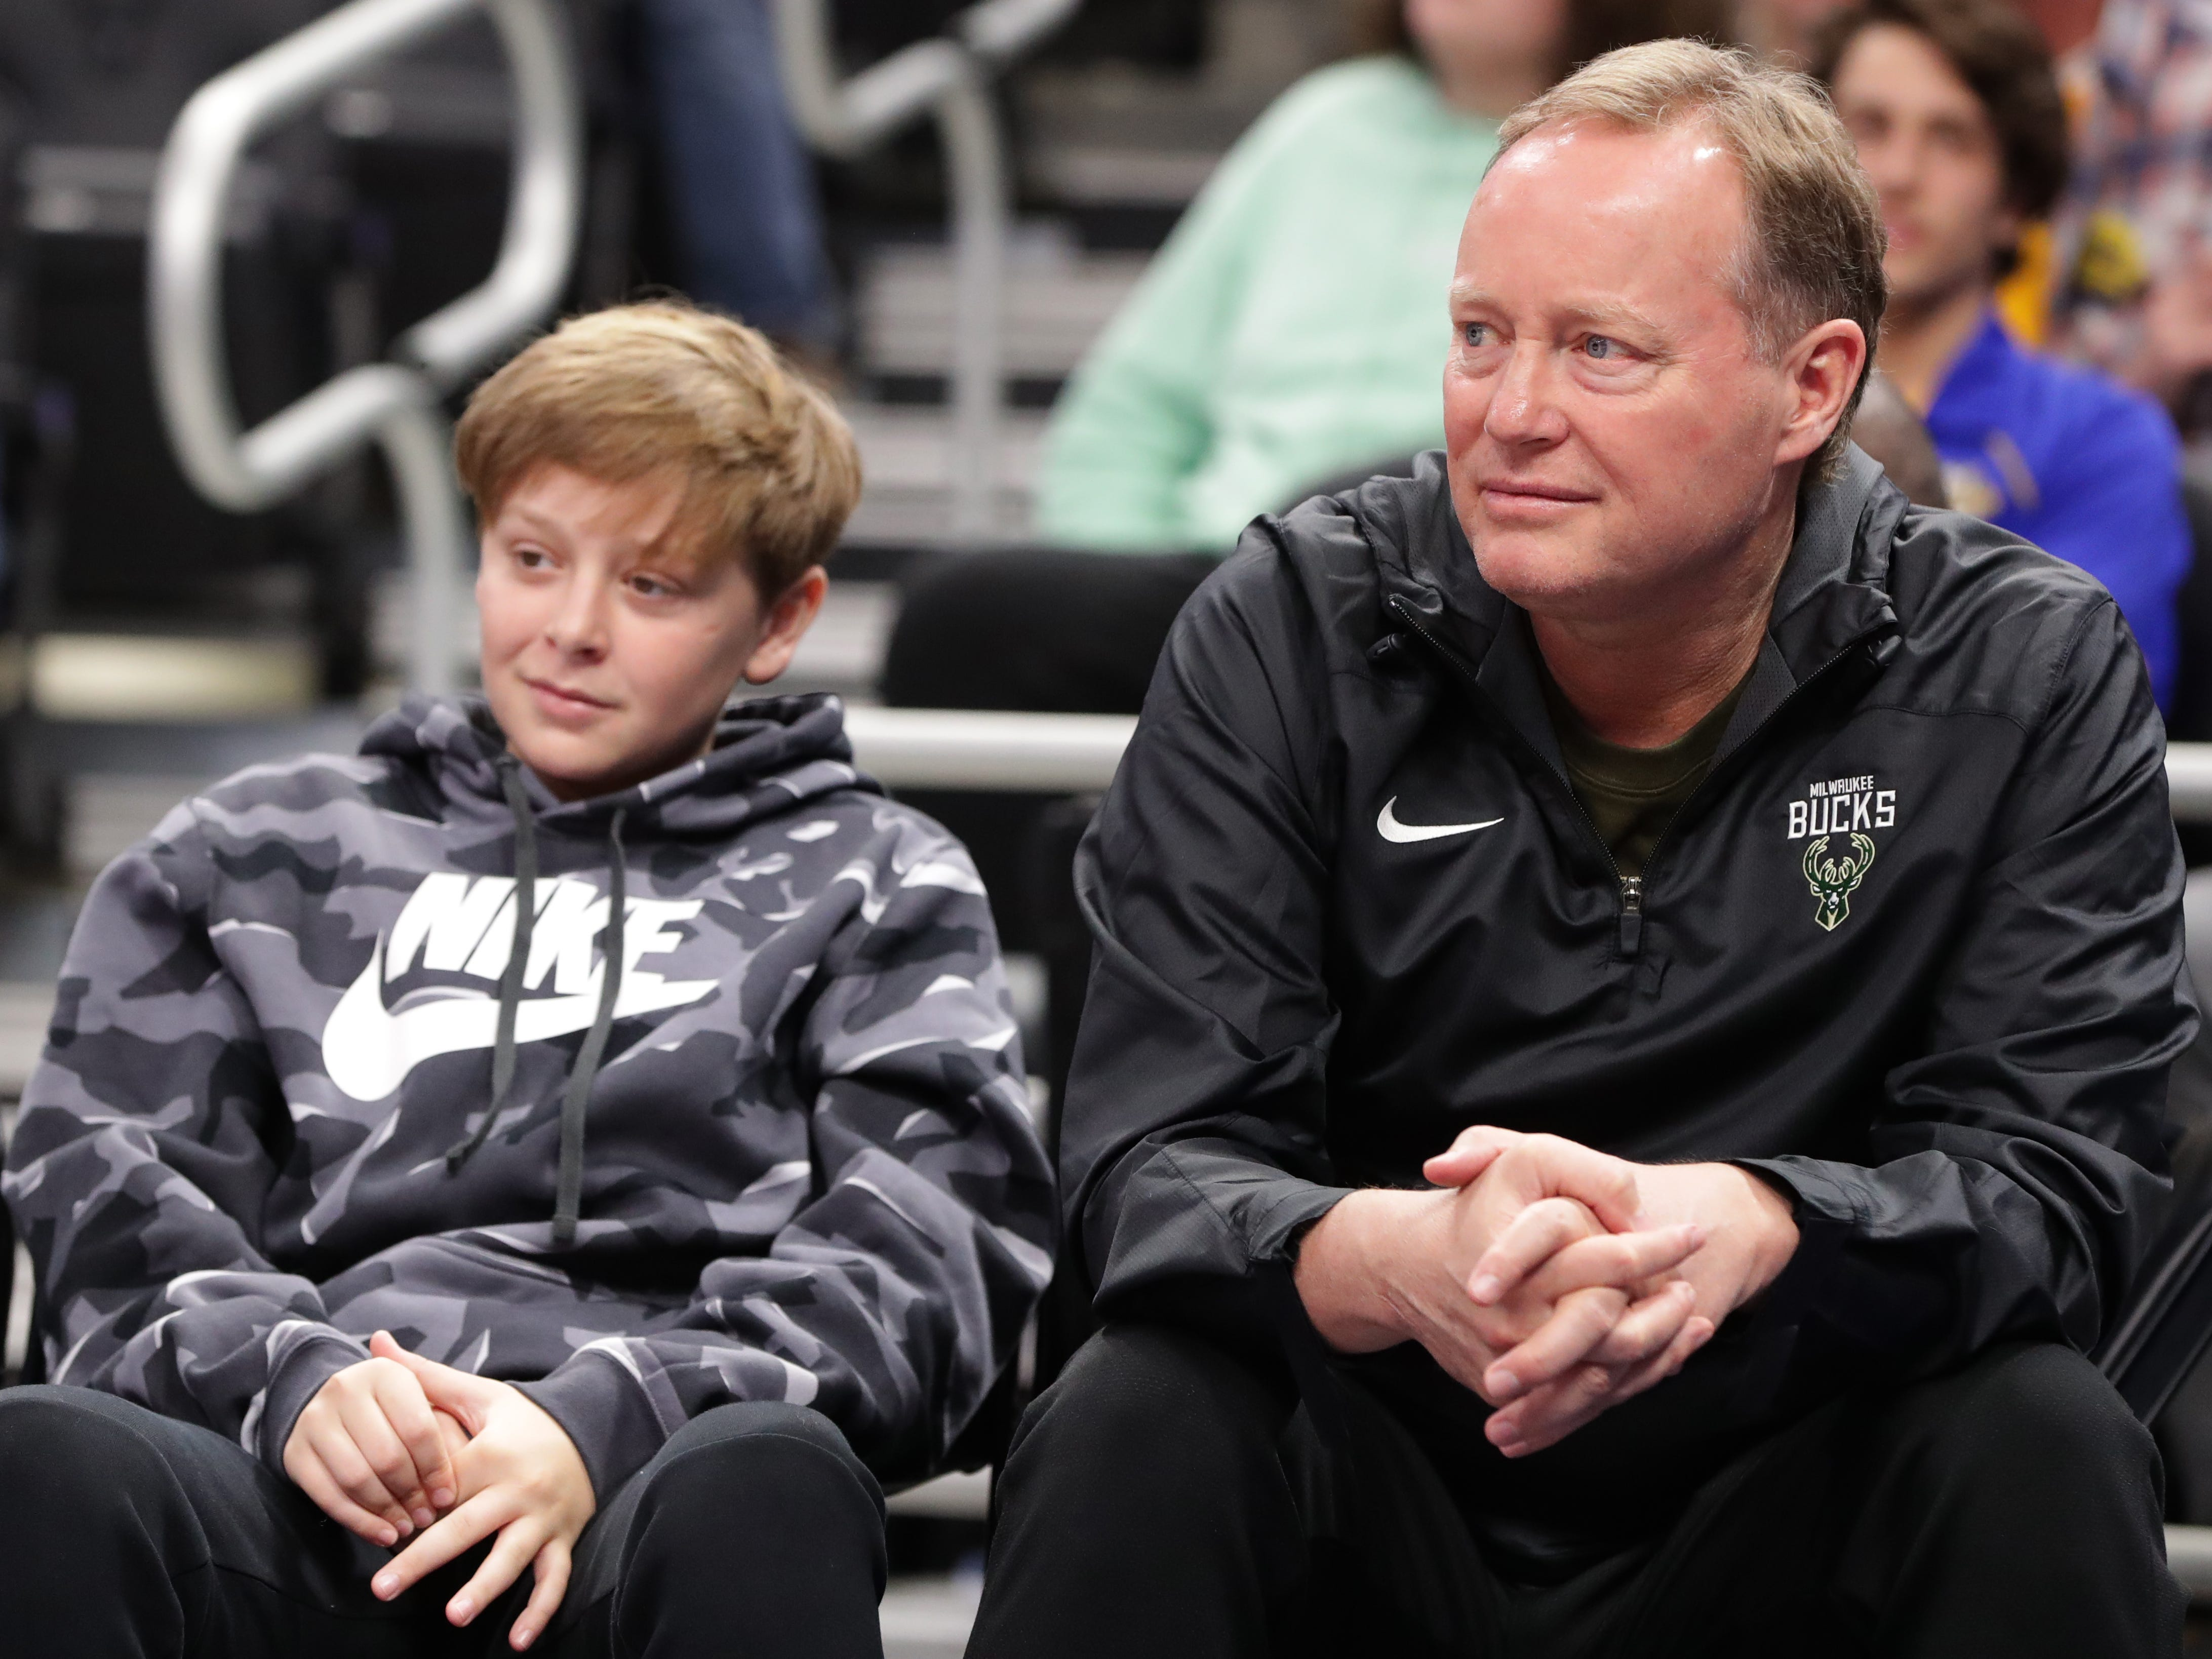 Milwaukee Bucks head coach Mike Budenholzer watches Marquette's  game against Georgetown.